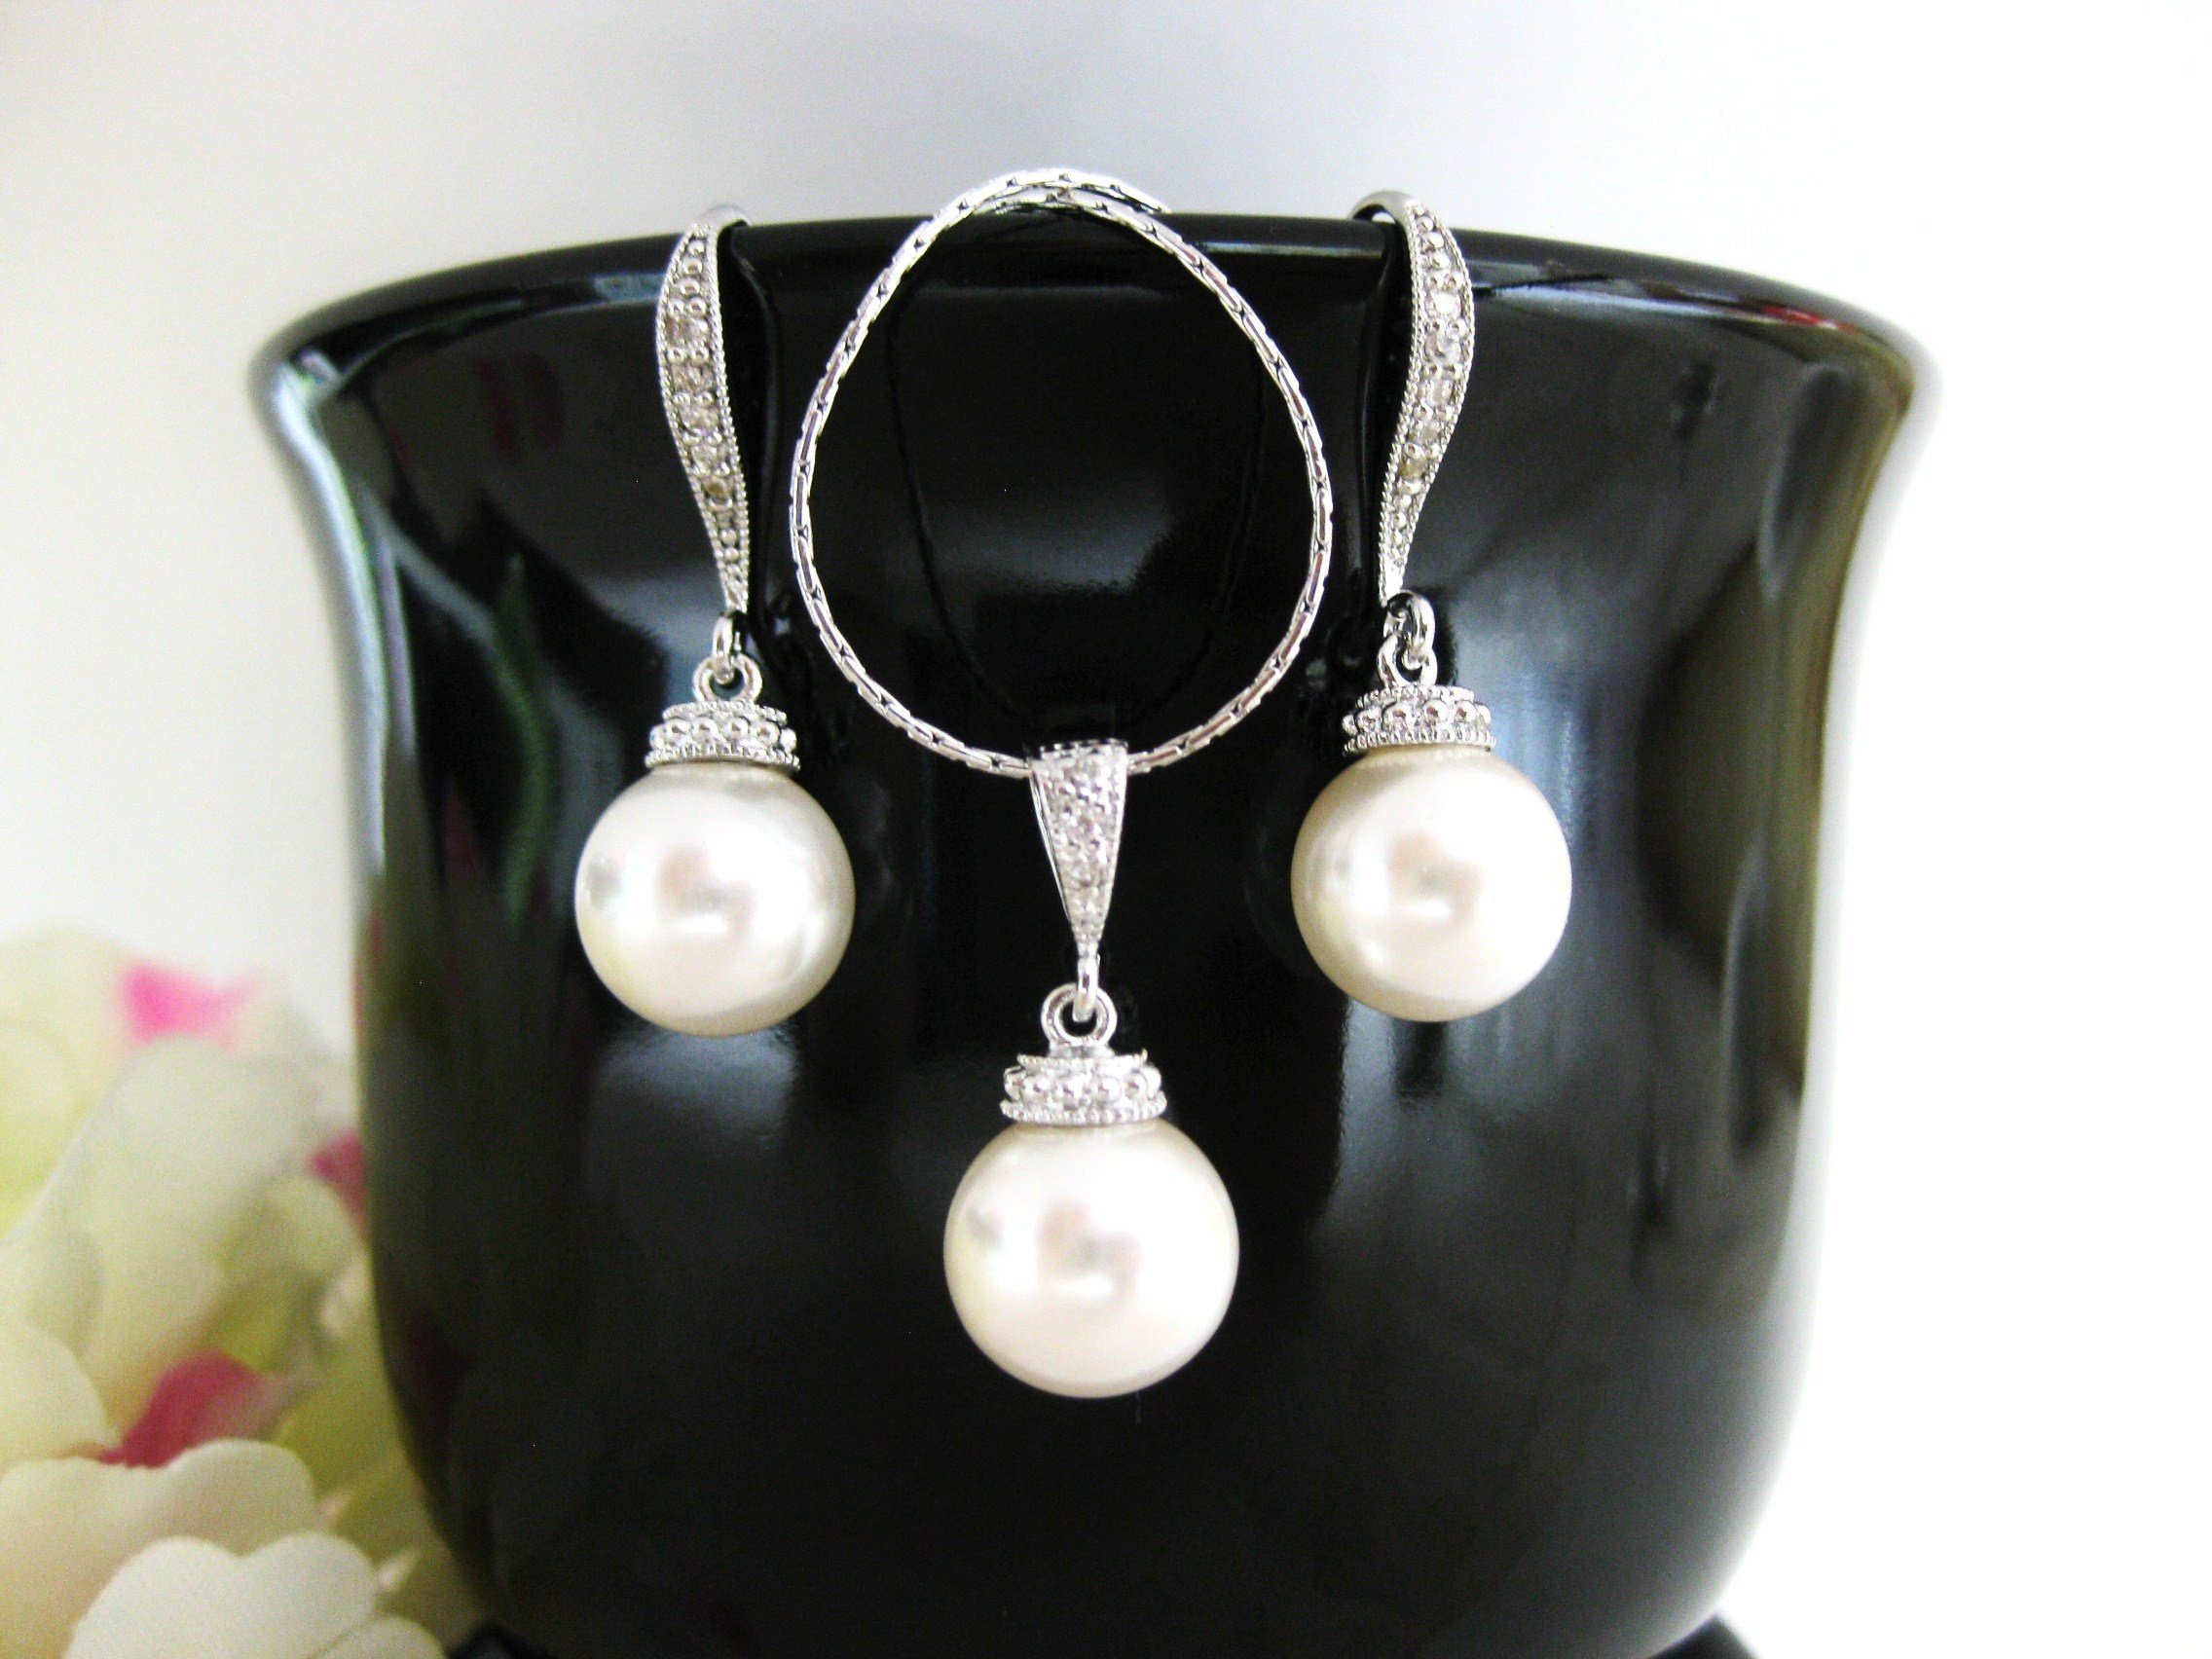 Bridal Pearl Earrings Necklace Gift Set Swarovski 10mm Round